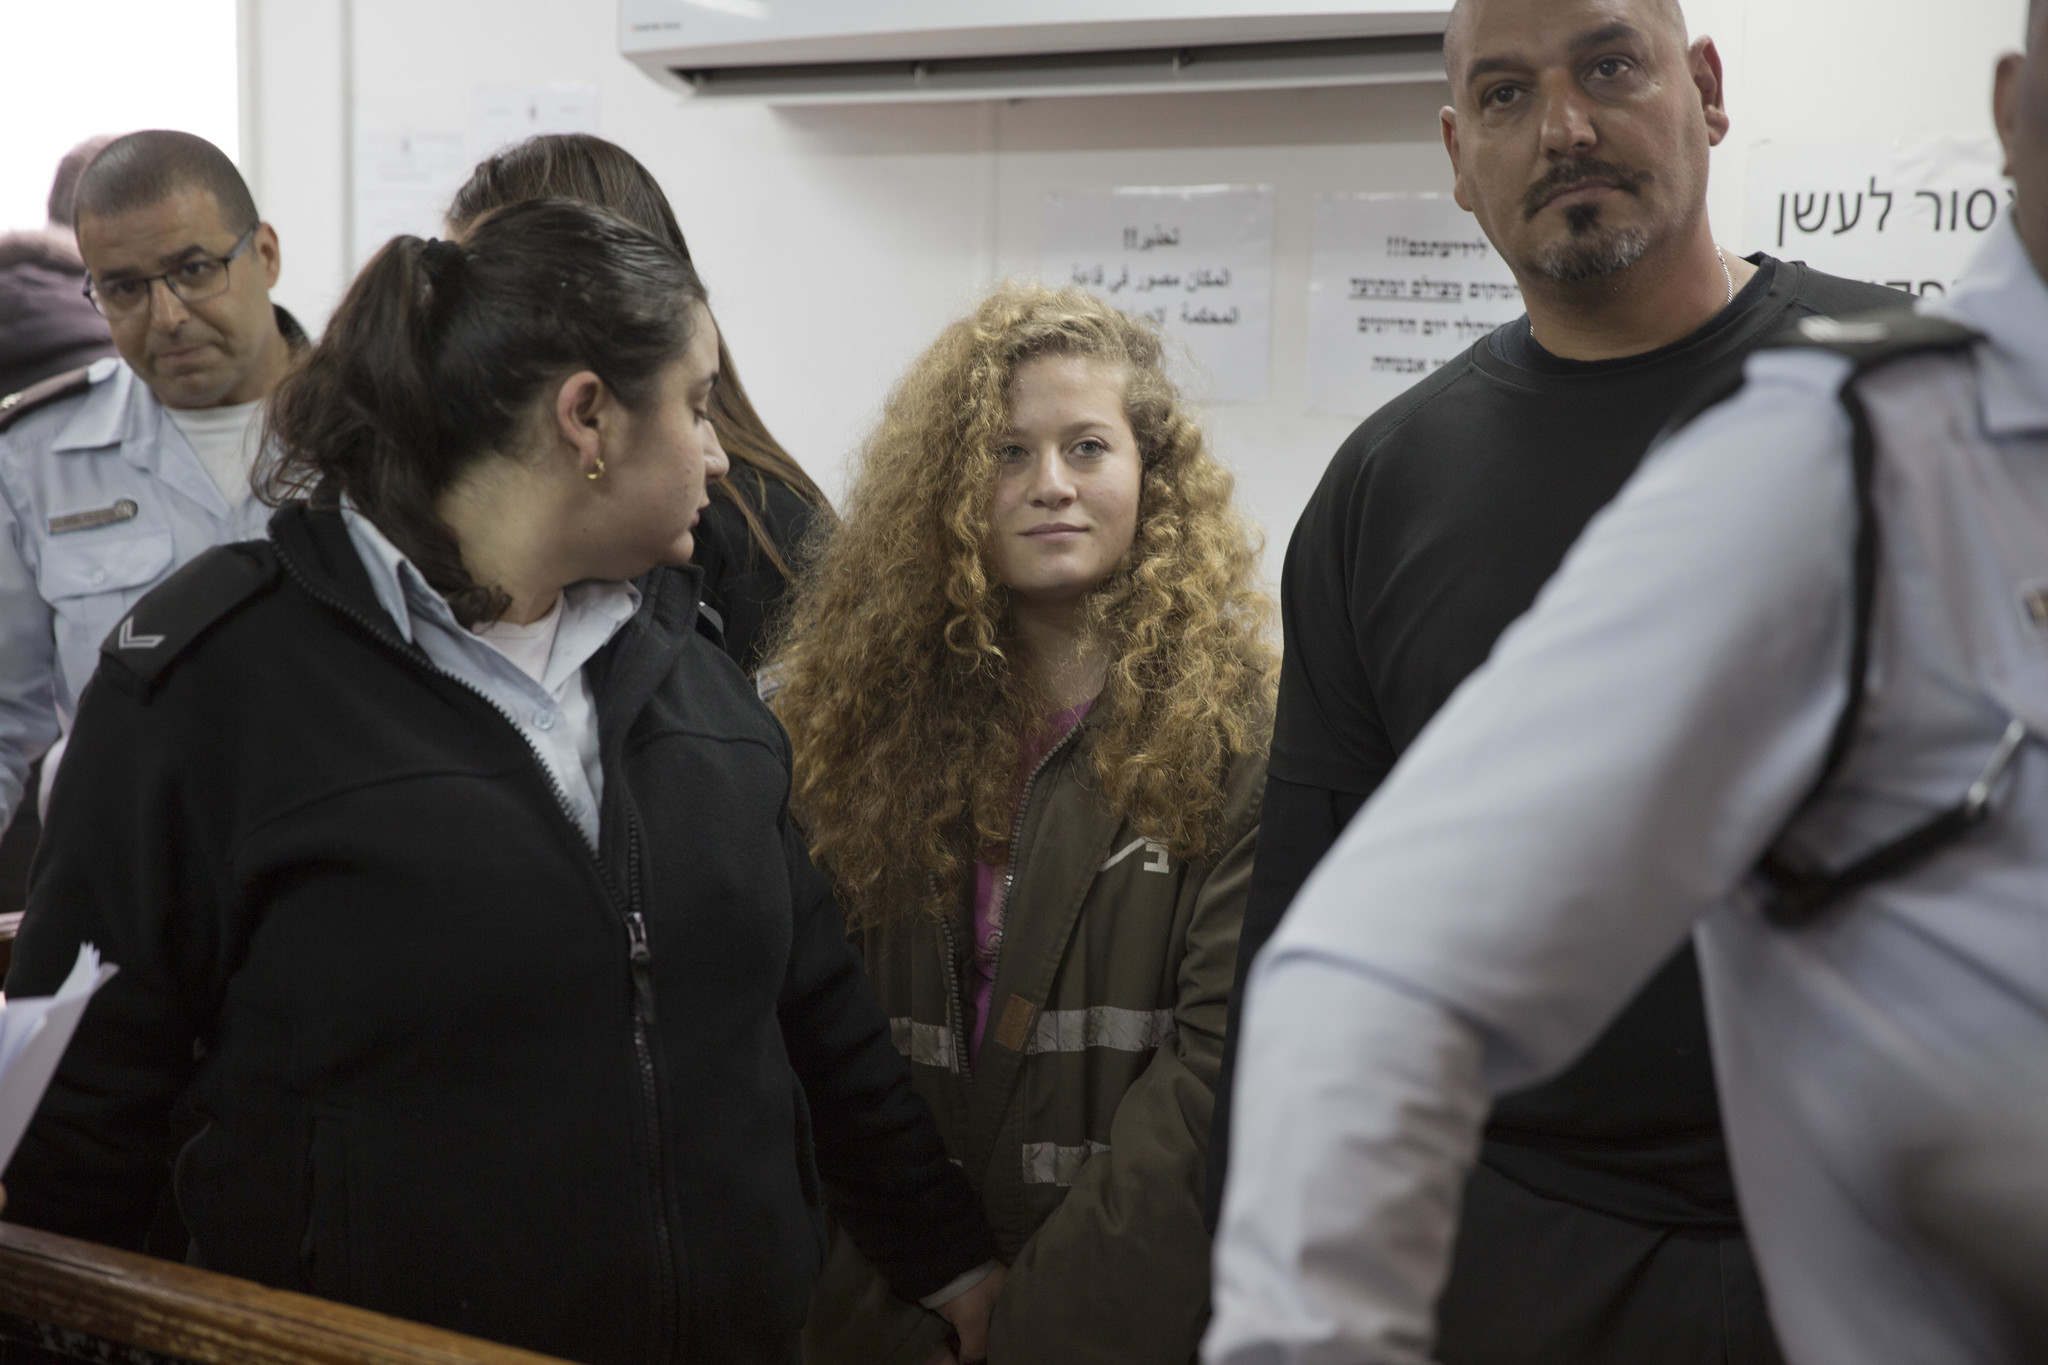 Israeli army court closes doors on closely watched trial of Ahed Tamimi, Palestinian teen who slapped and punched soldiers